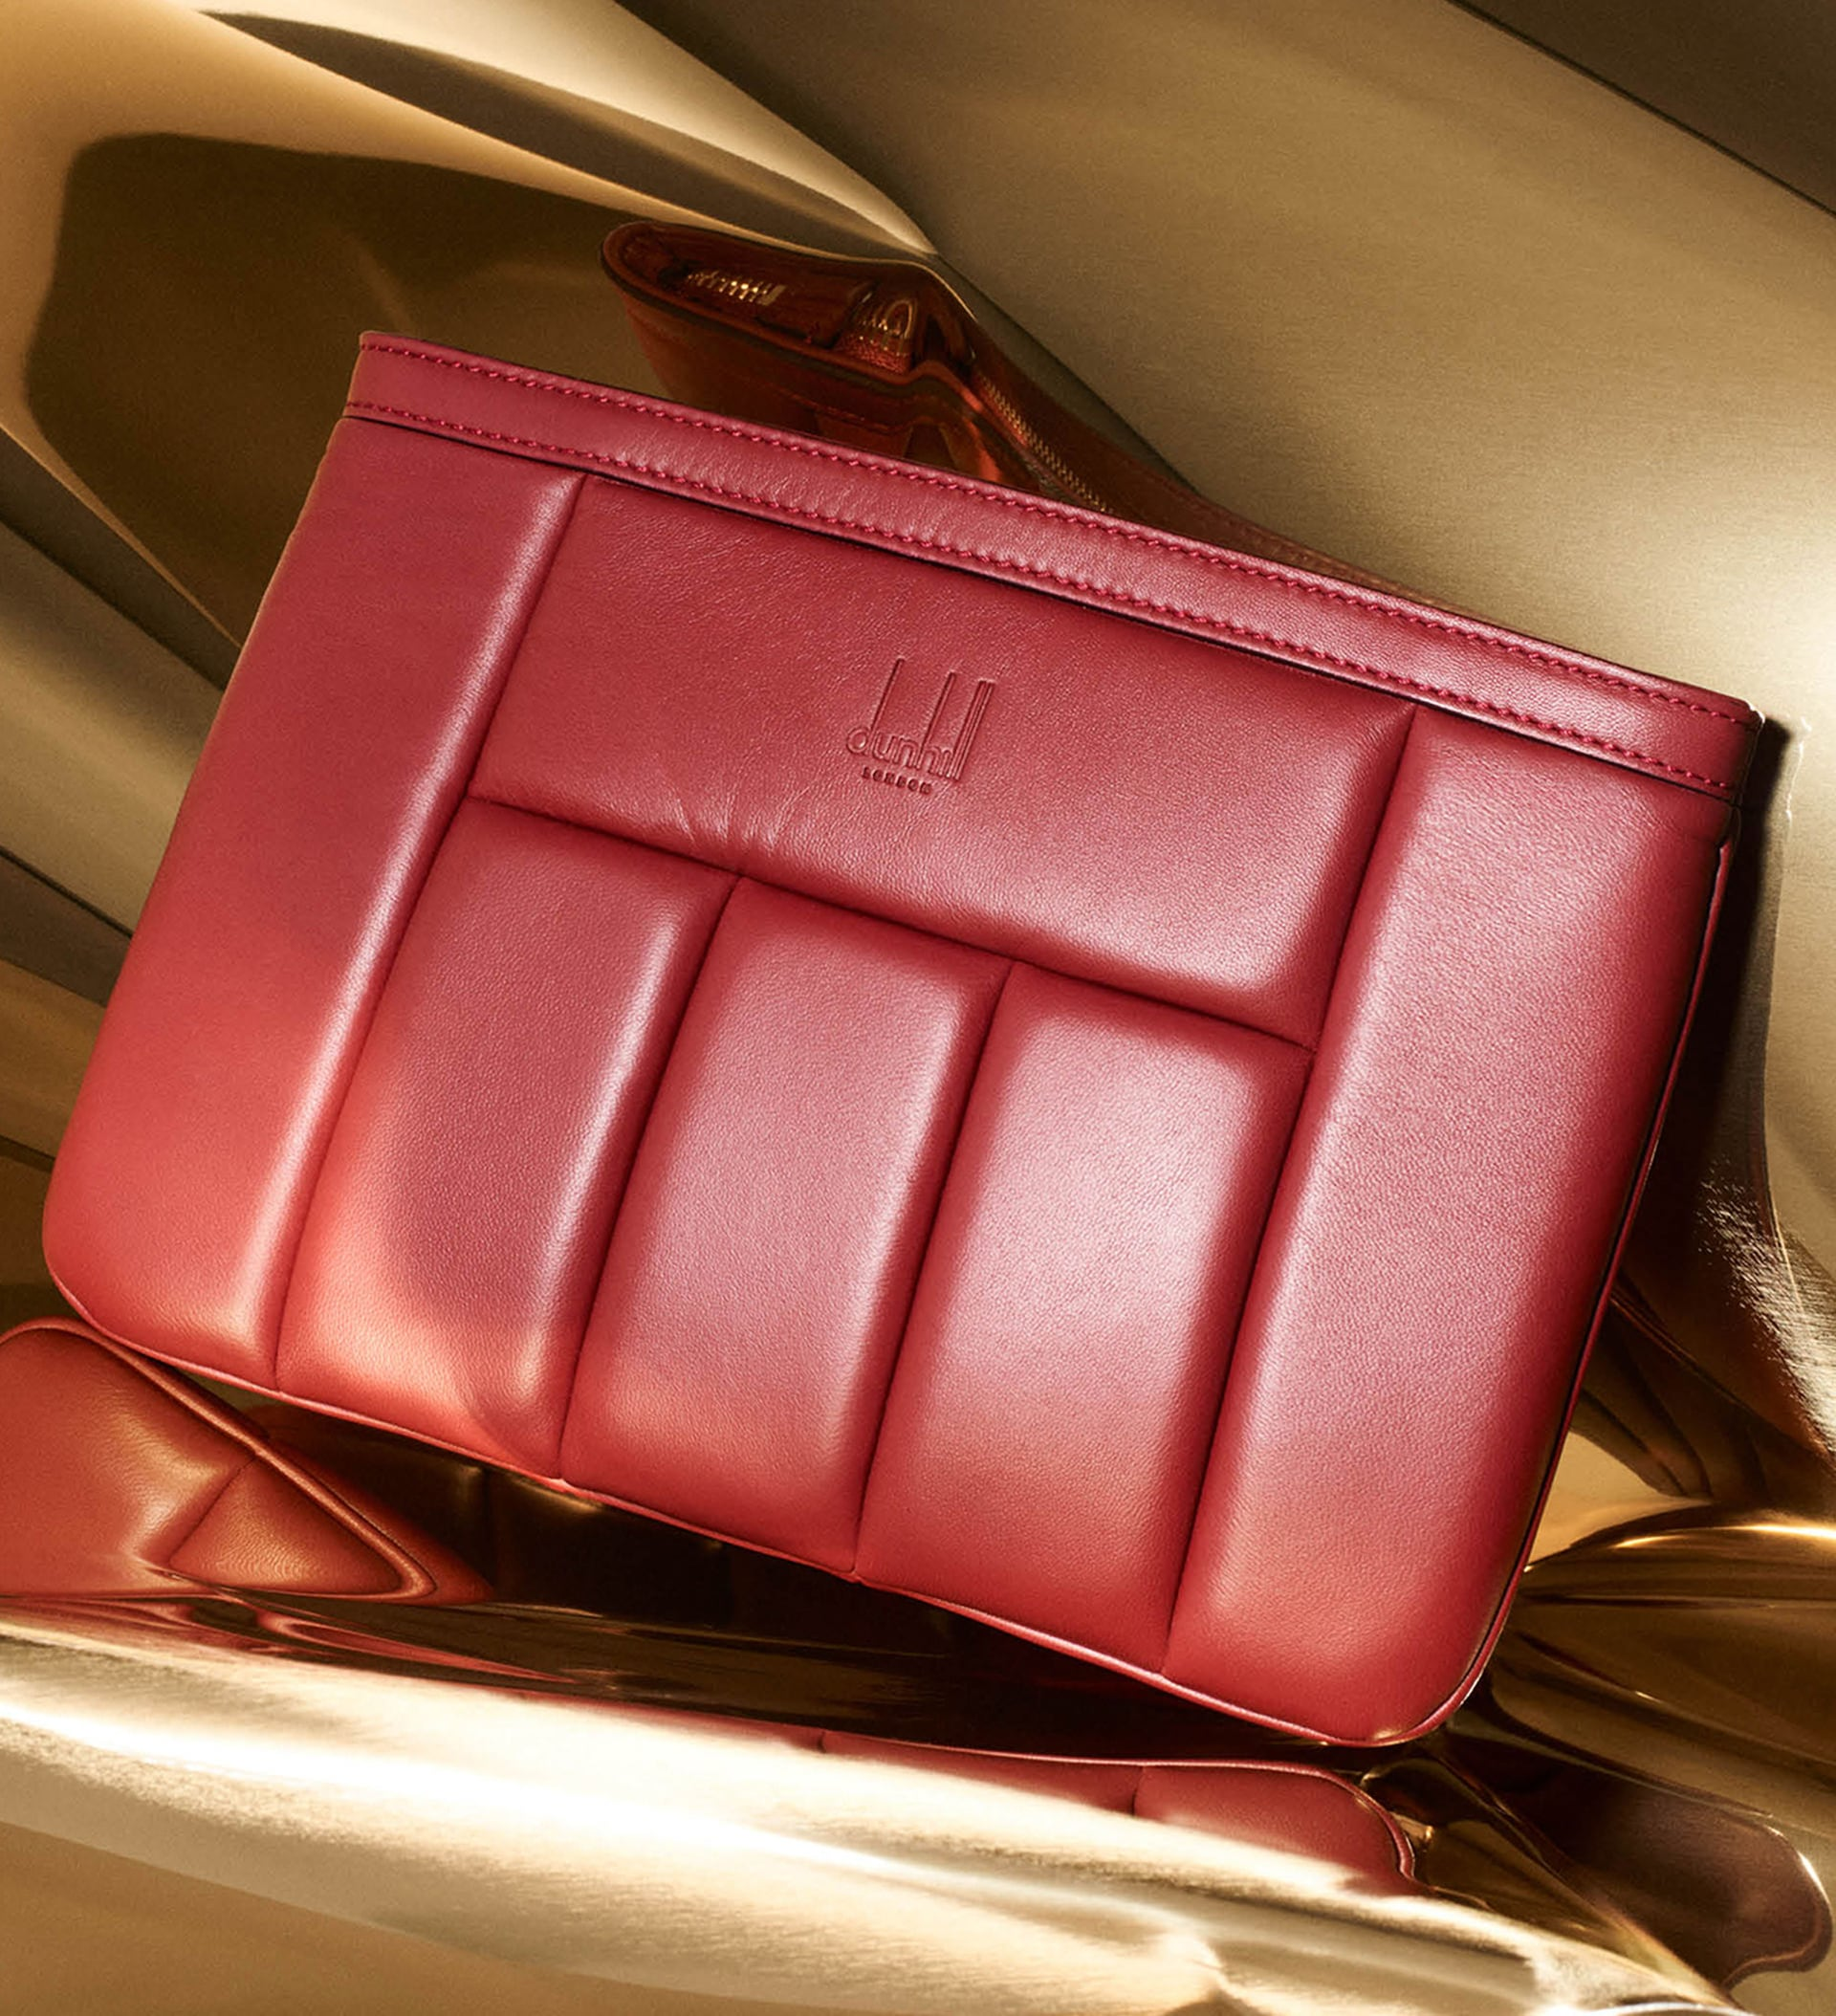 57cf77d651be dunhill, men s designer clothing   leather accessories   dunhill ...